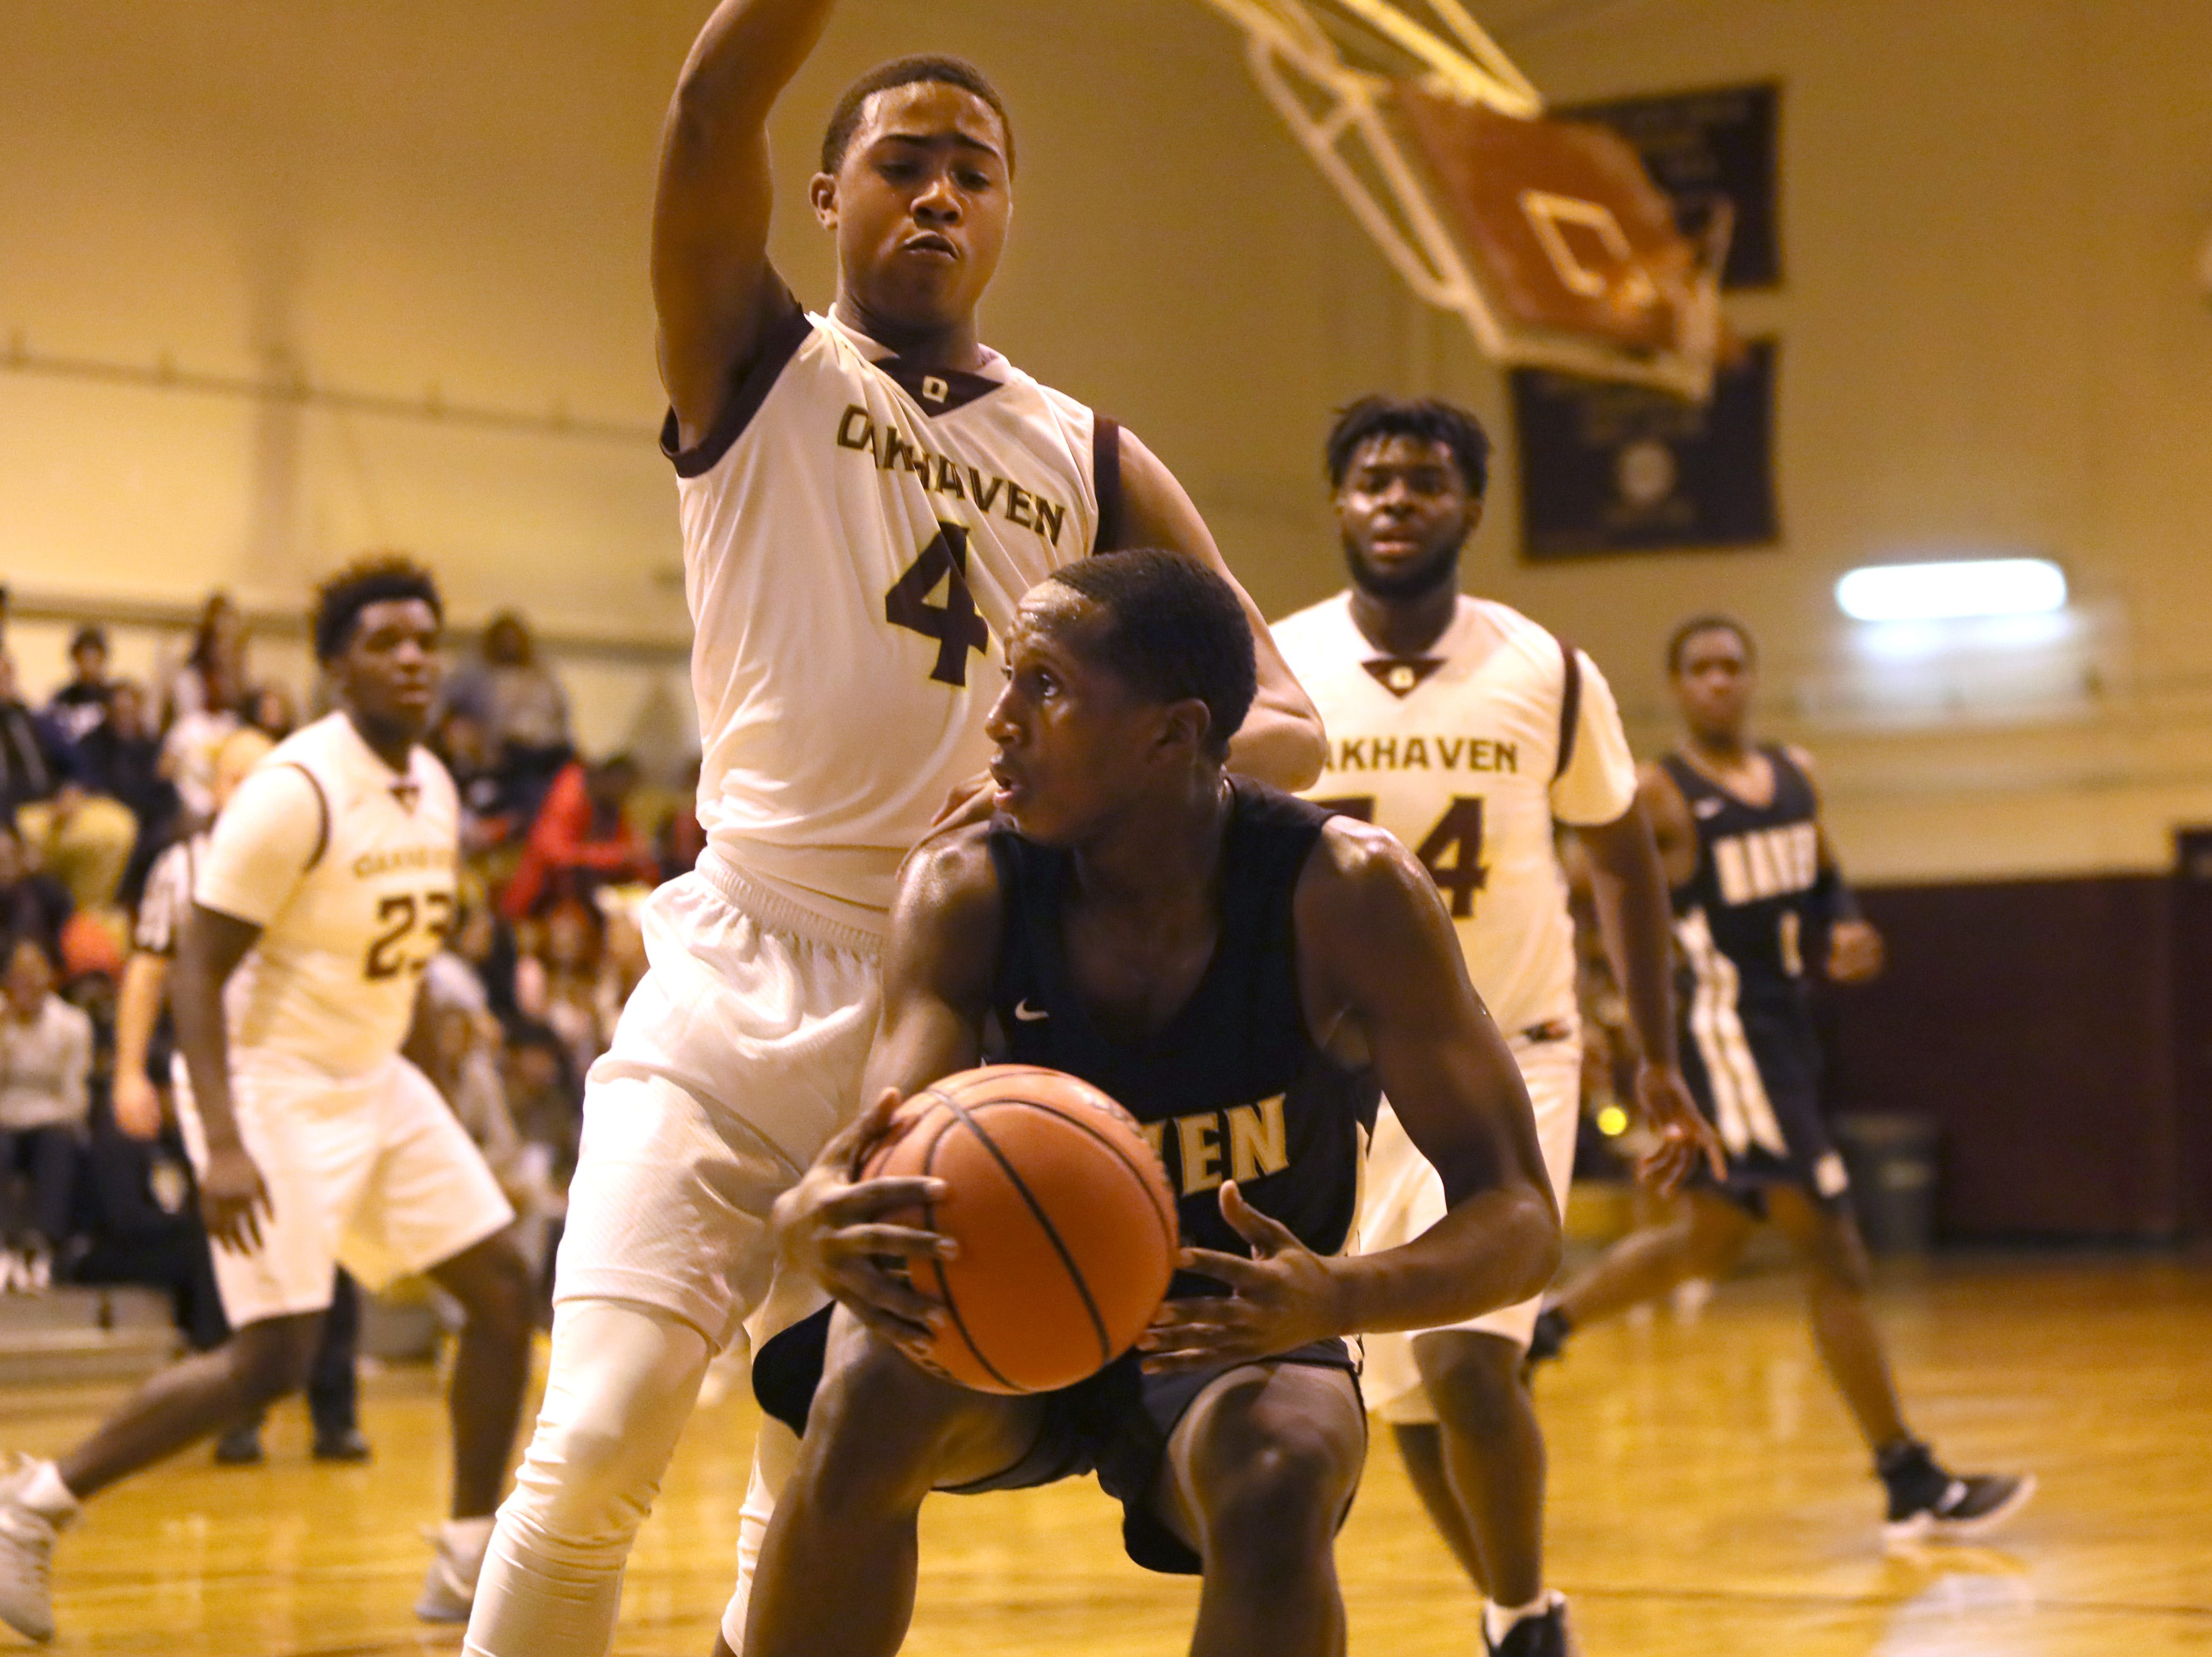 Oakhaven's Terrance Jackson defends Whitehaven's Antnarn Smith during their game at Oakhaven High School on Thursday, Jan. 10, 2019.